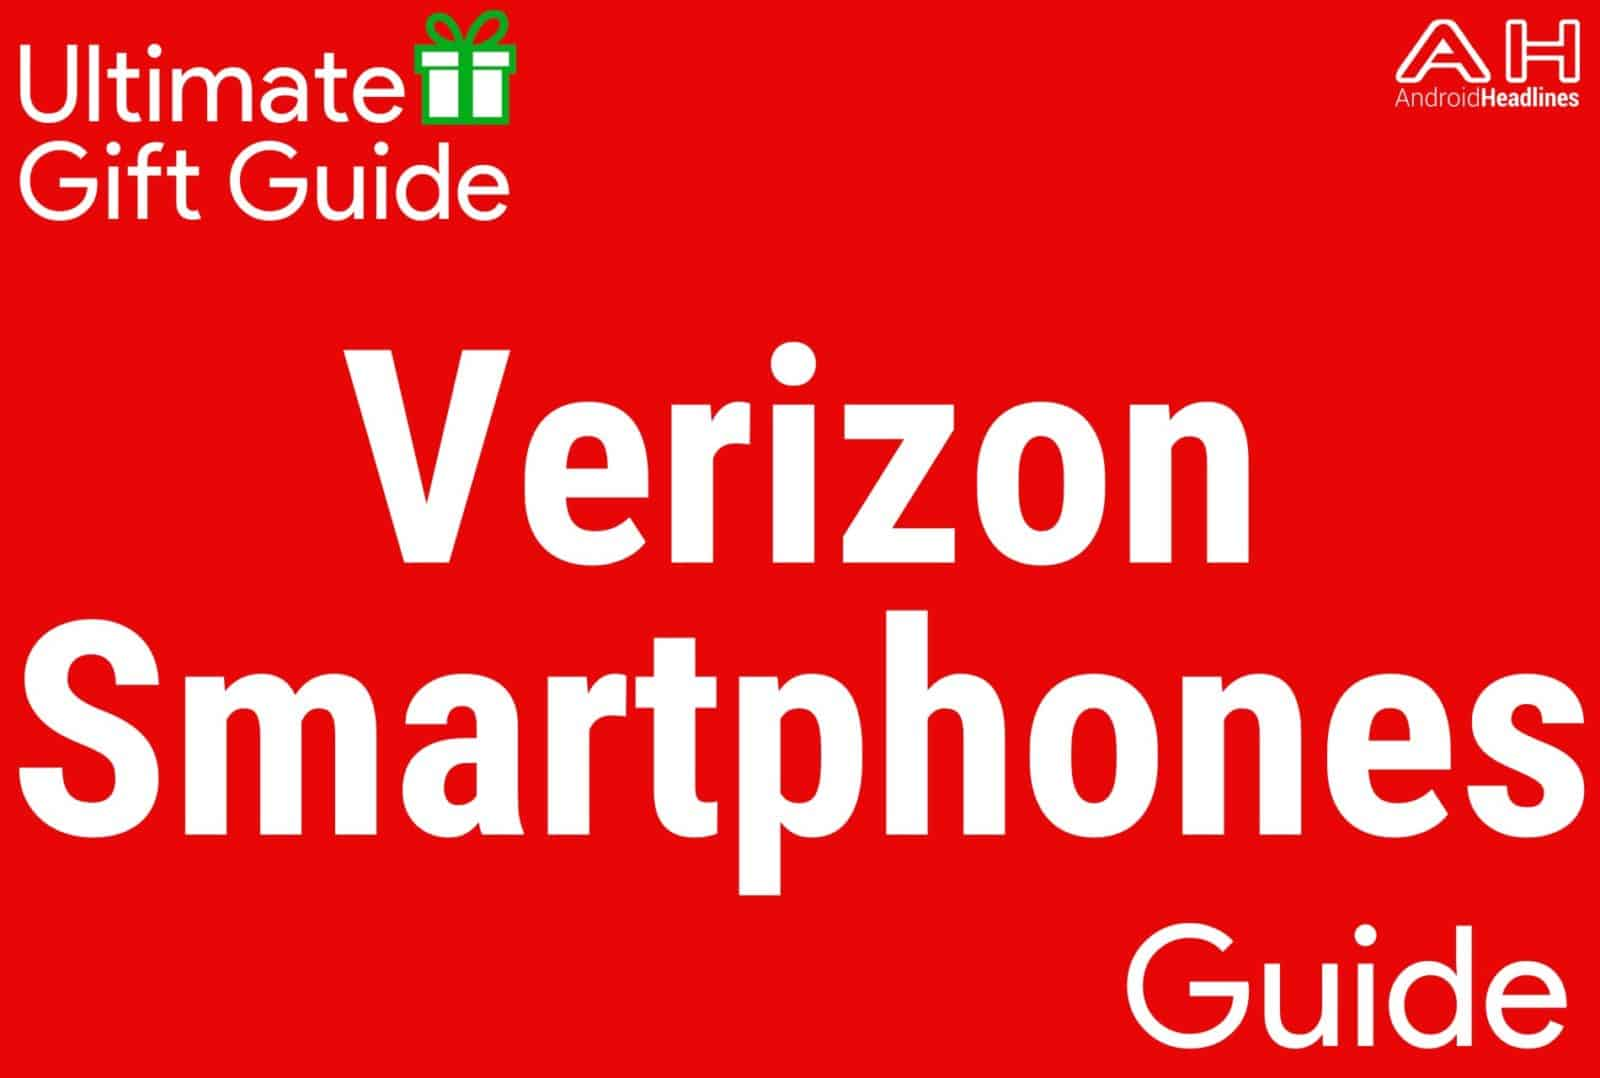 Smartphones - Verizon - Gift Guide 2015